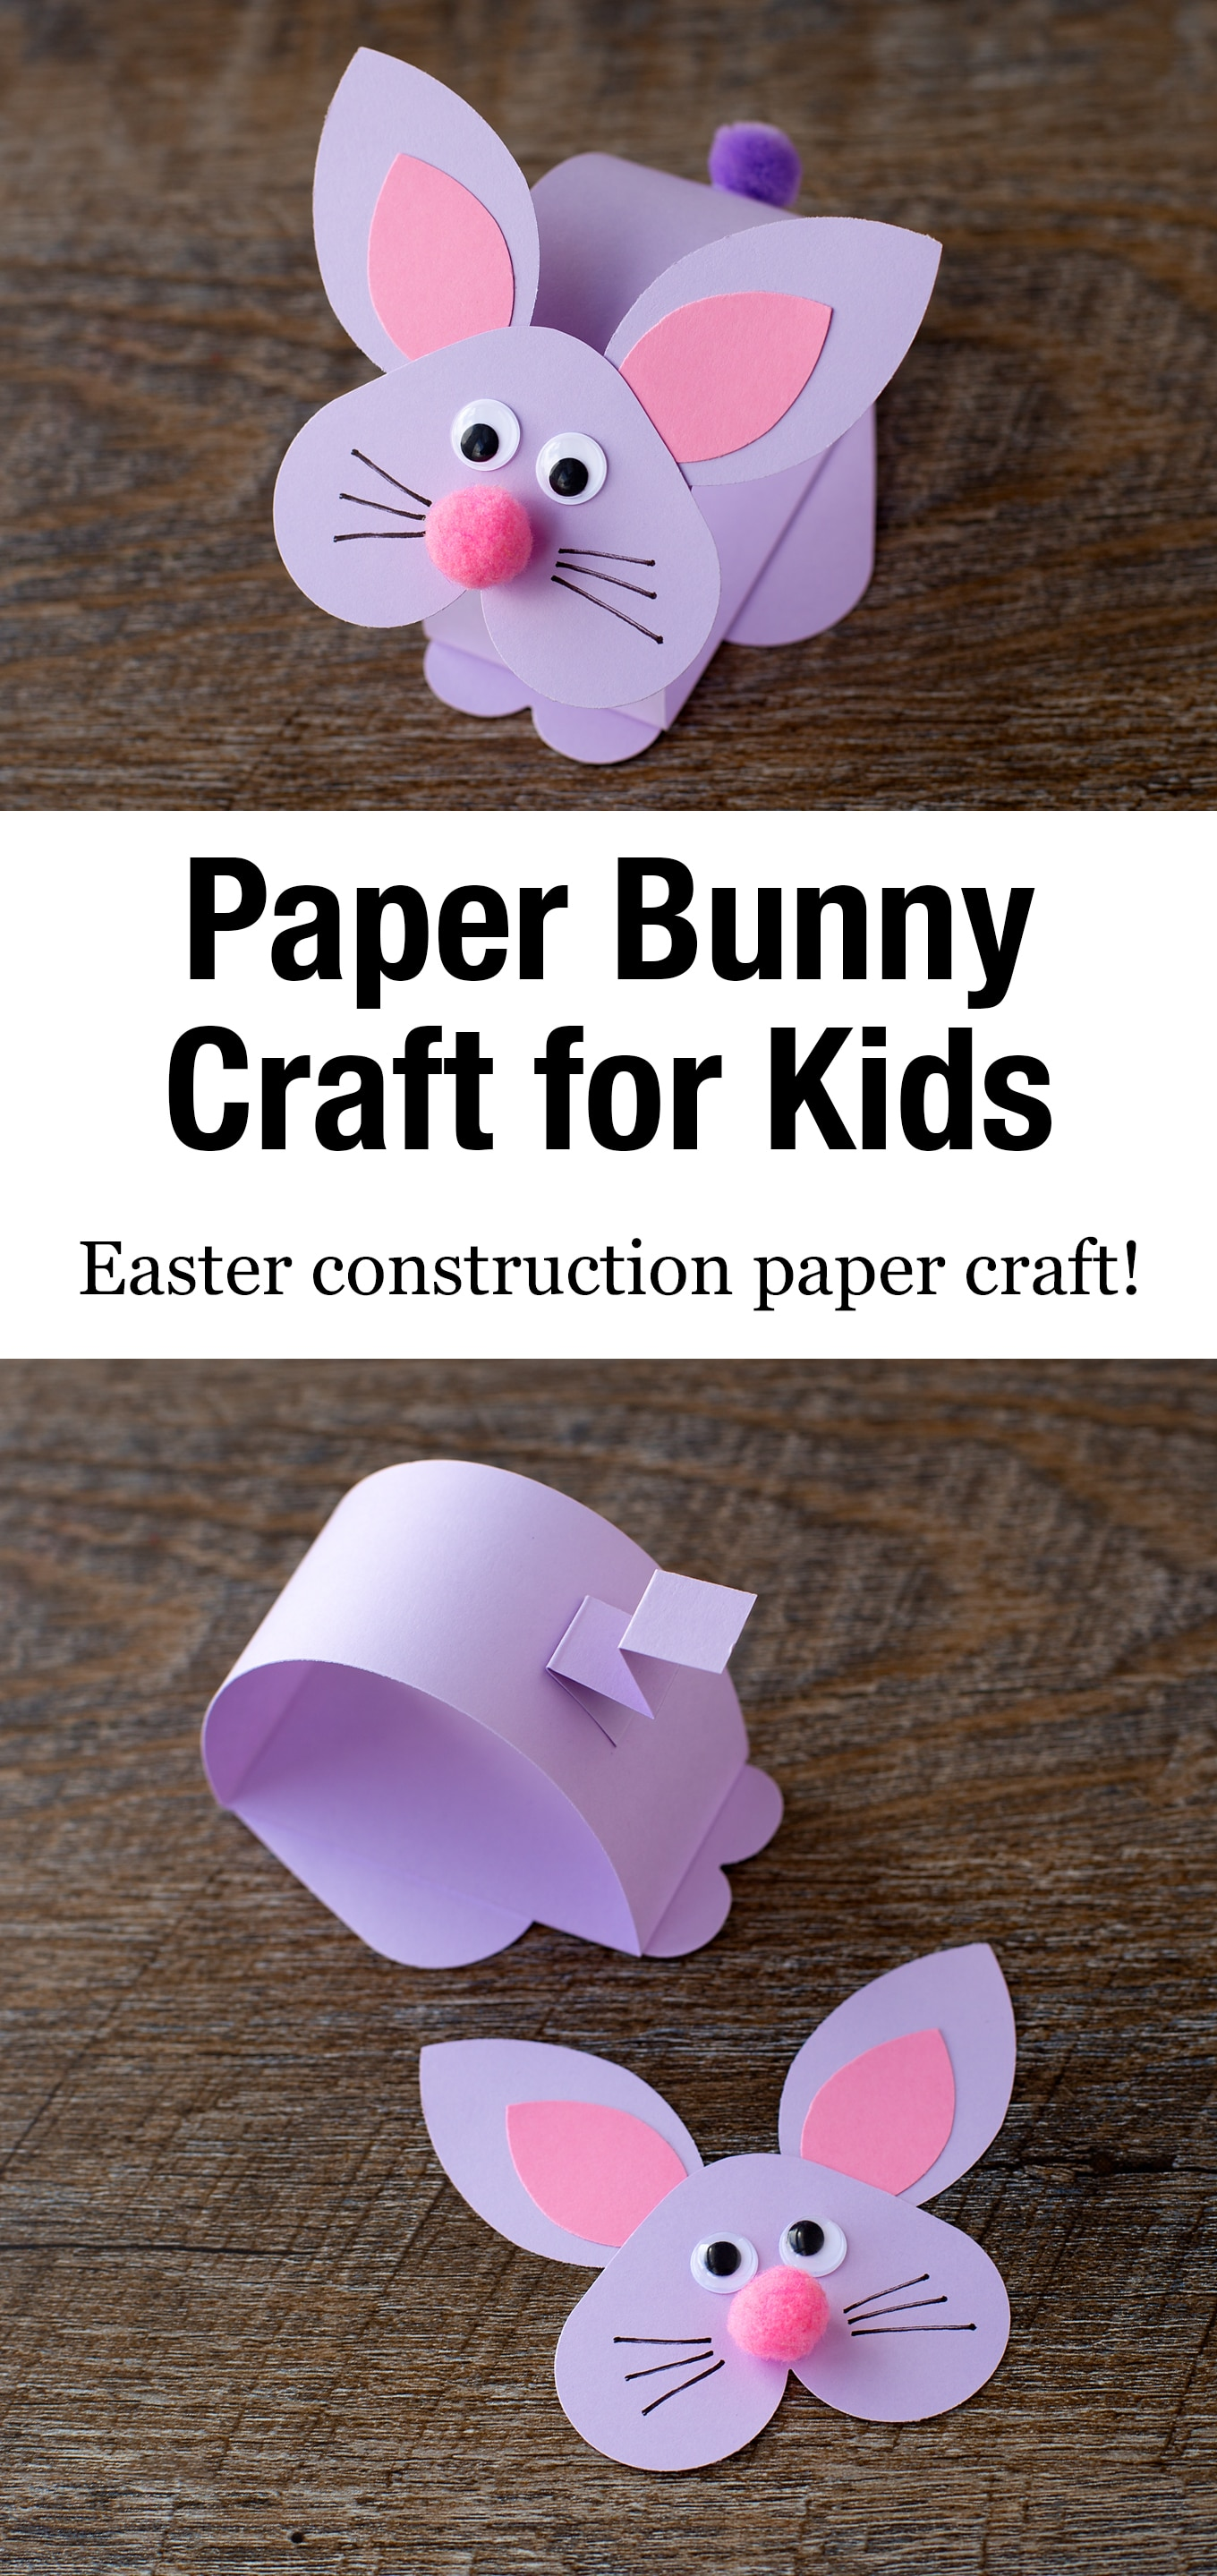 Just in time for Easter, kids of all ages will enjoy making an easy and fun paper bobble head bunnycraft at school or home. #bunnycraft #eastercraft #kidscrafts via @firefliesandmudpies